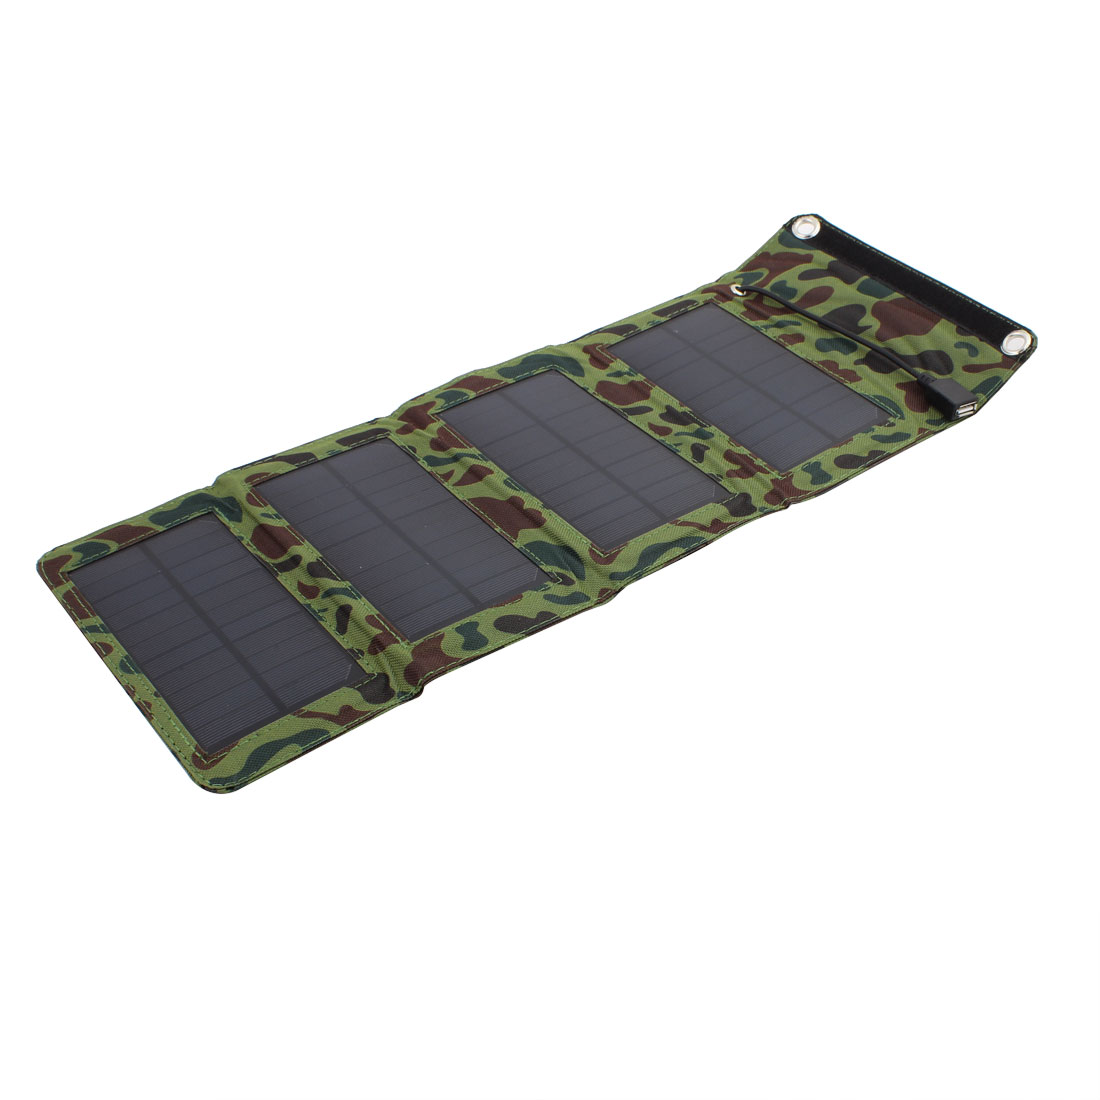 7W One Ports USB Foldable Portable Outdoors Solar Panel Charger Camouflage